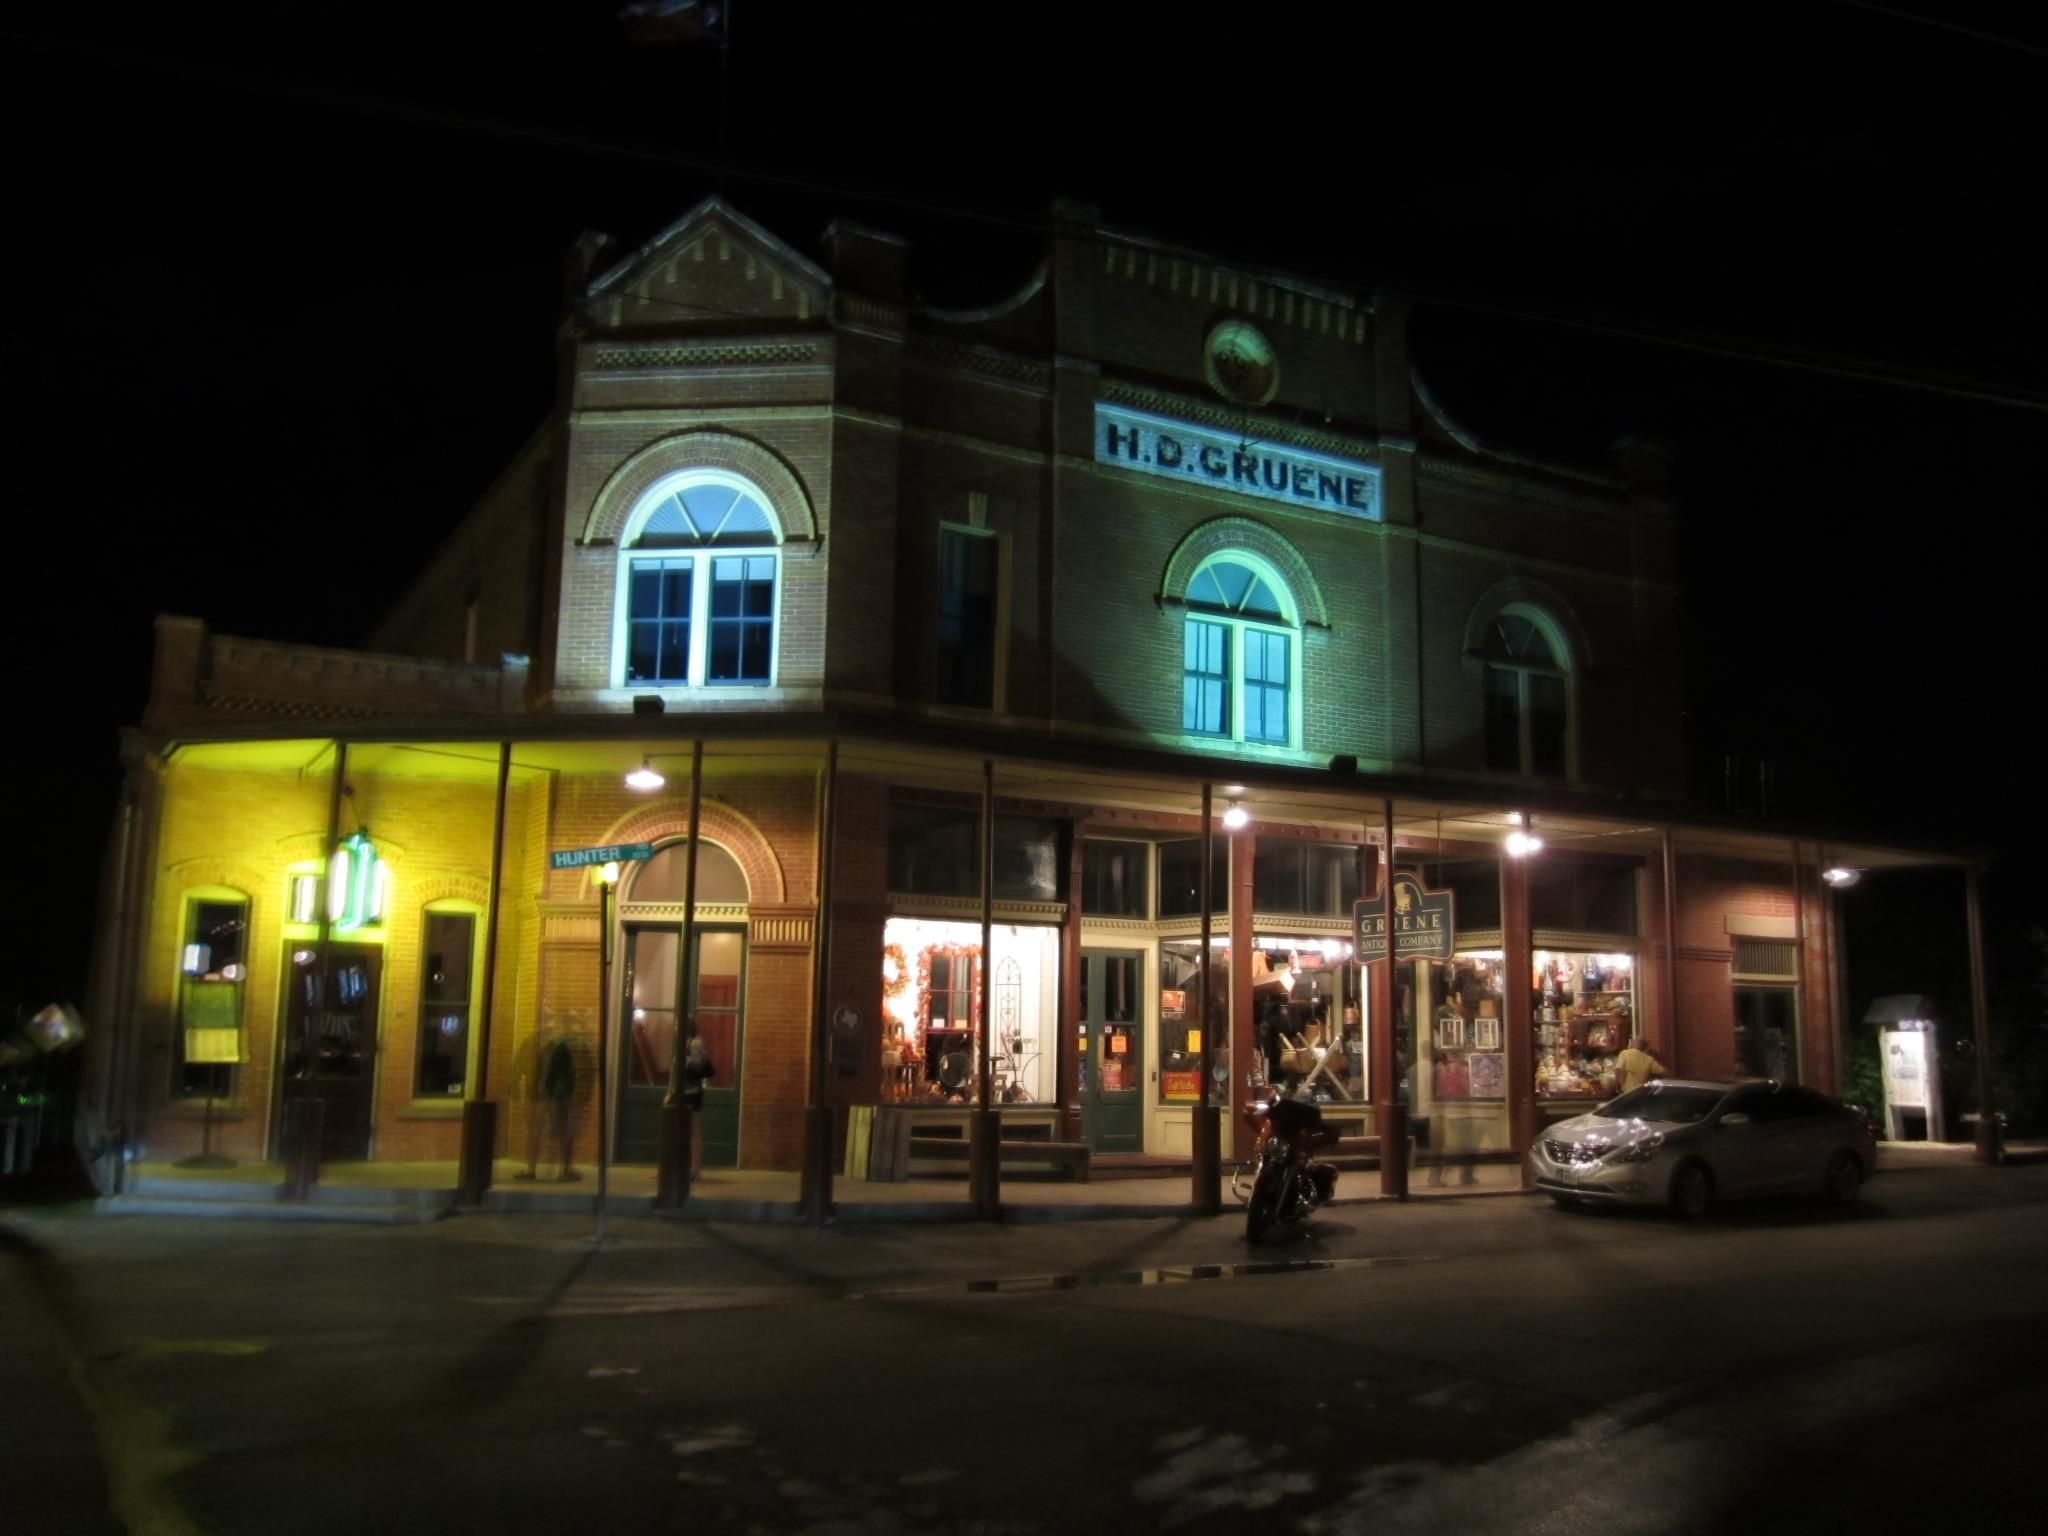 The Second image I took in Gruene, TX.  The building across from Gruene Hall, was taken with my Canon PowerShot ELPH 100HS in Handheld NightScene, once again another beautiful shot.